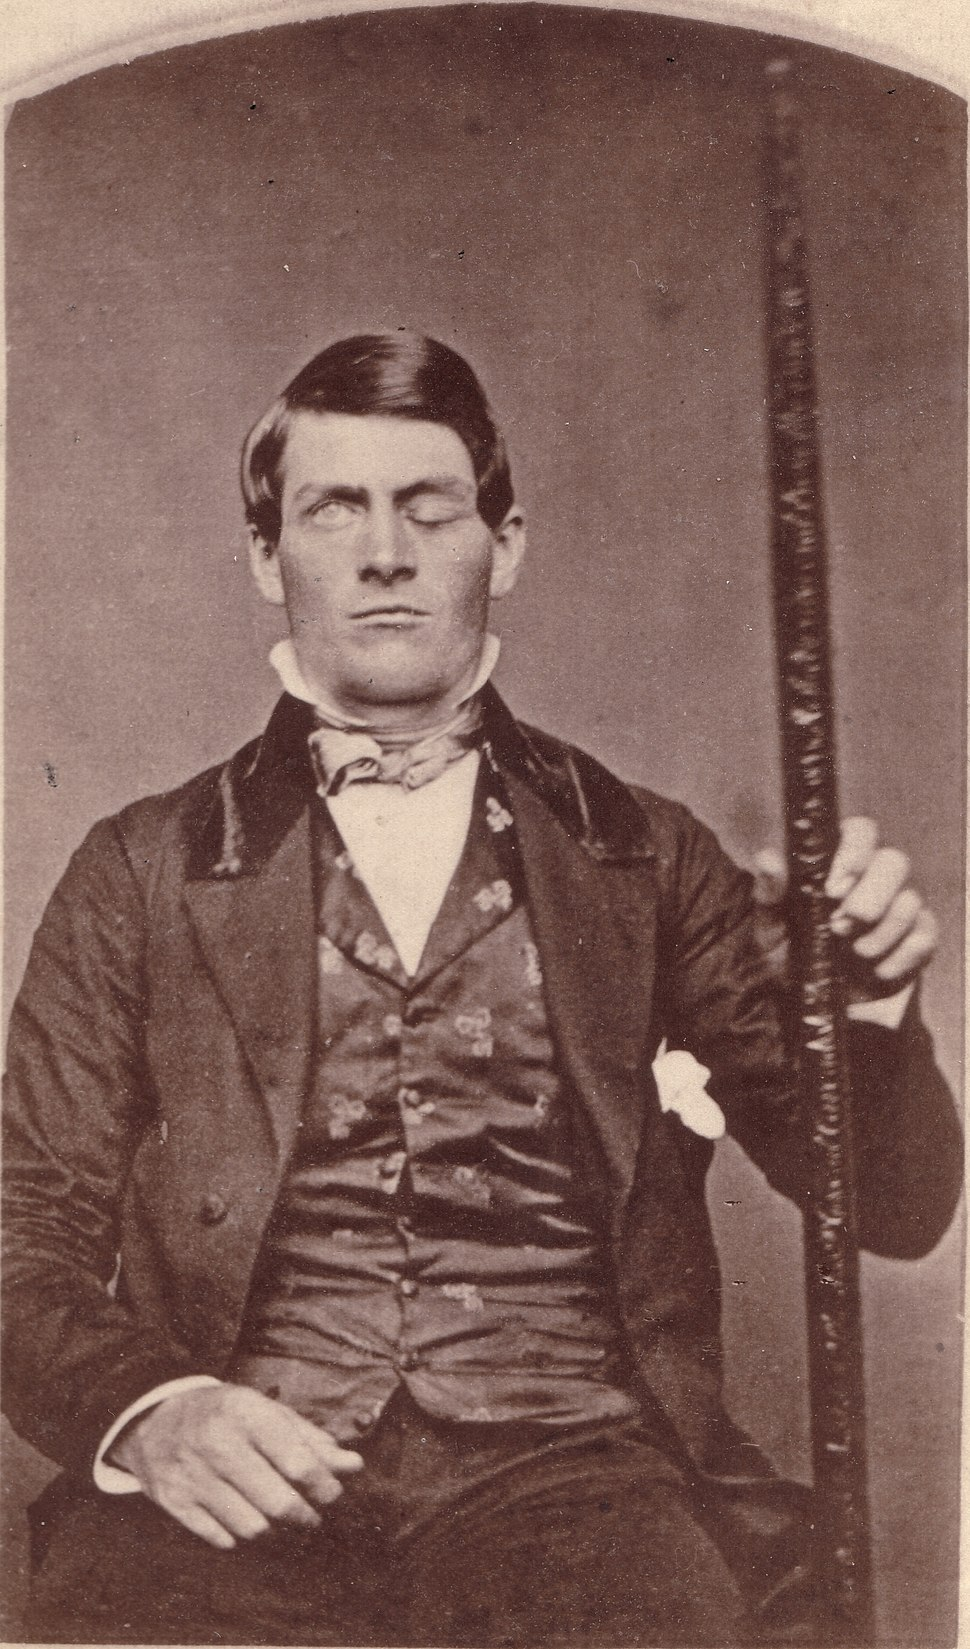 Phineas Gage GageMillerPhoto2010-02-17 Unretouched Color Cropped